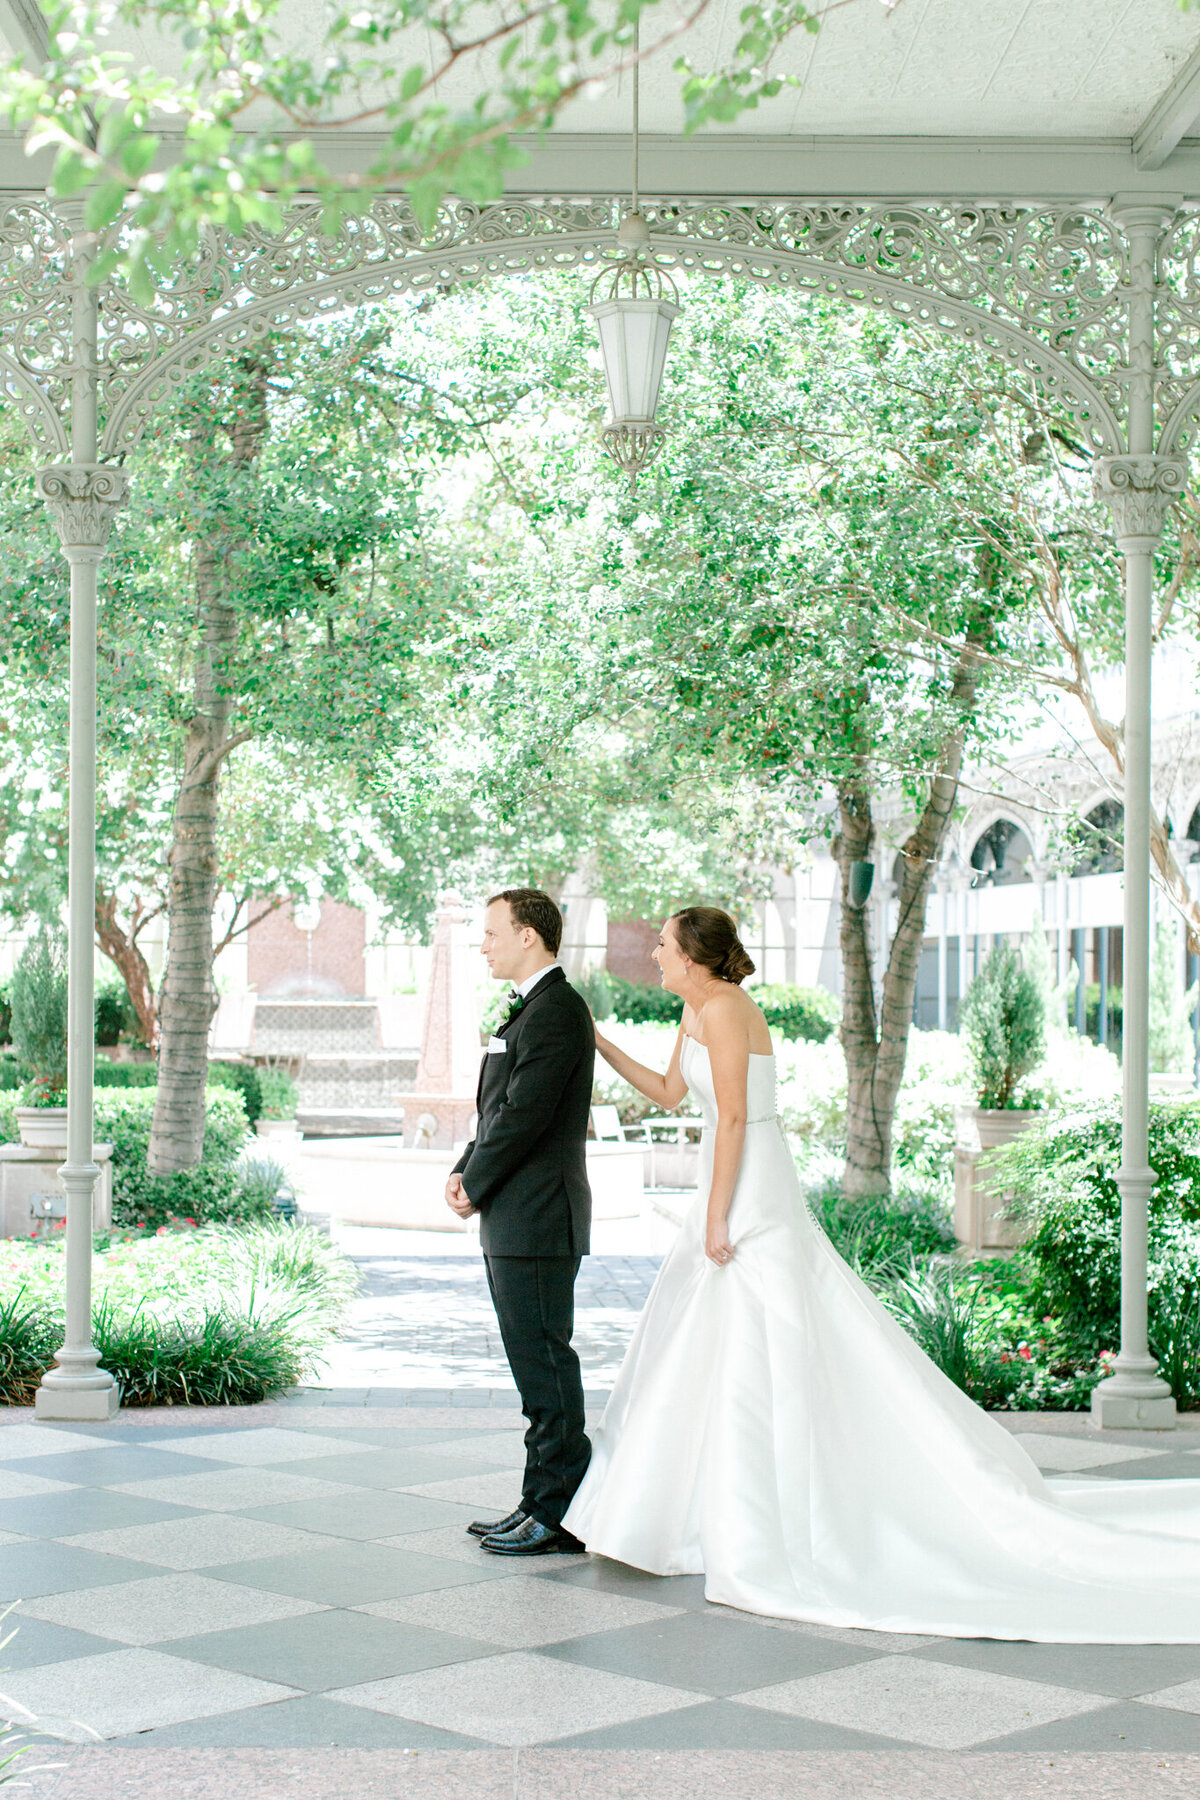 Wedding at the Crescent Court Hotel and Highland Park United Methodist Church in Dallas | Sami Kathryn Photography | DFW Wedding Photographer-48